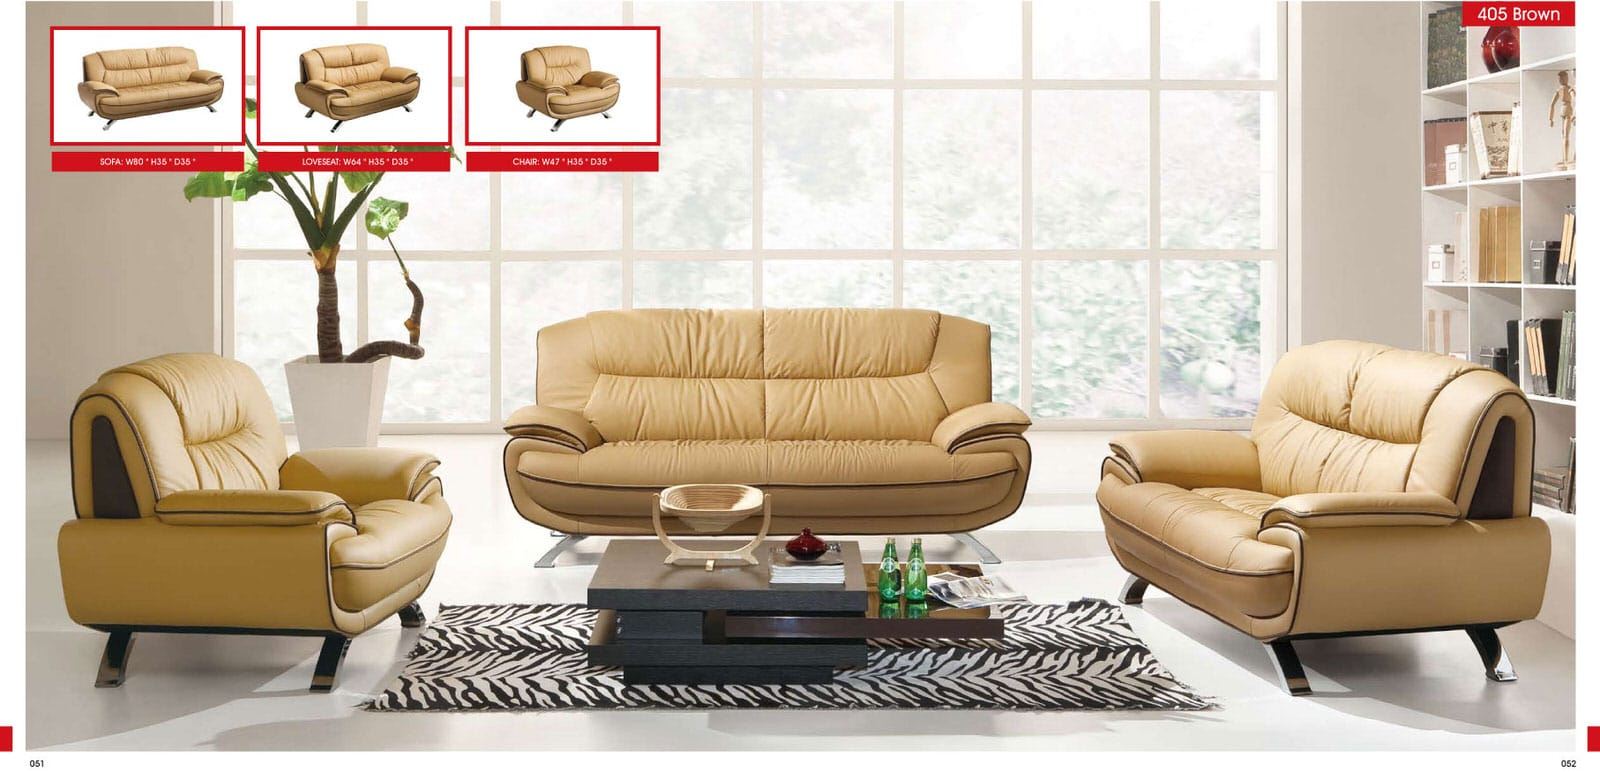 405 brown leather sofa set by esf - Leather furniture for small living room ...